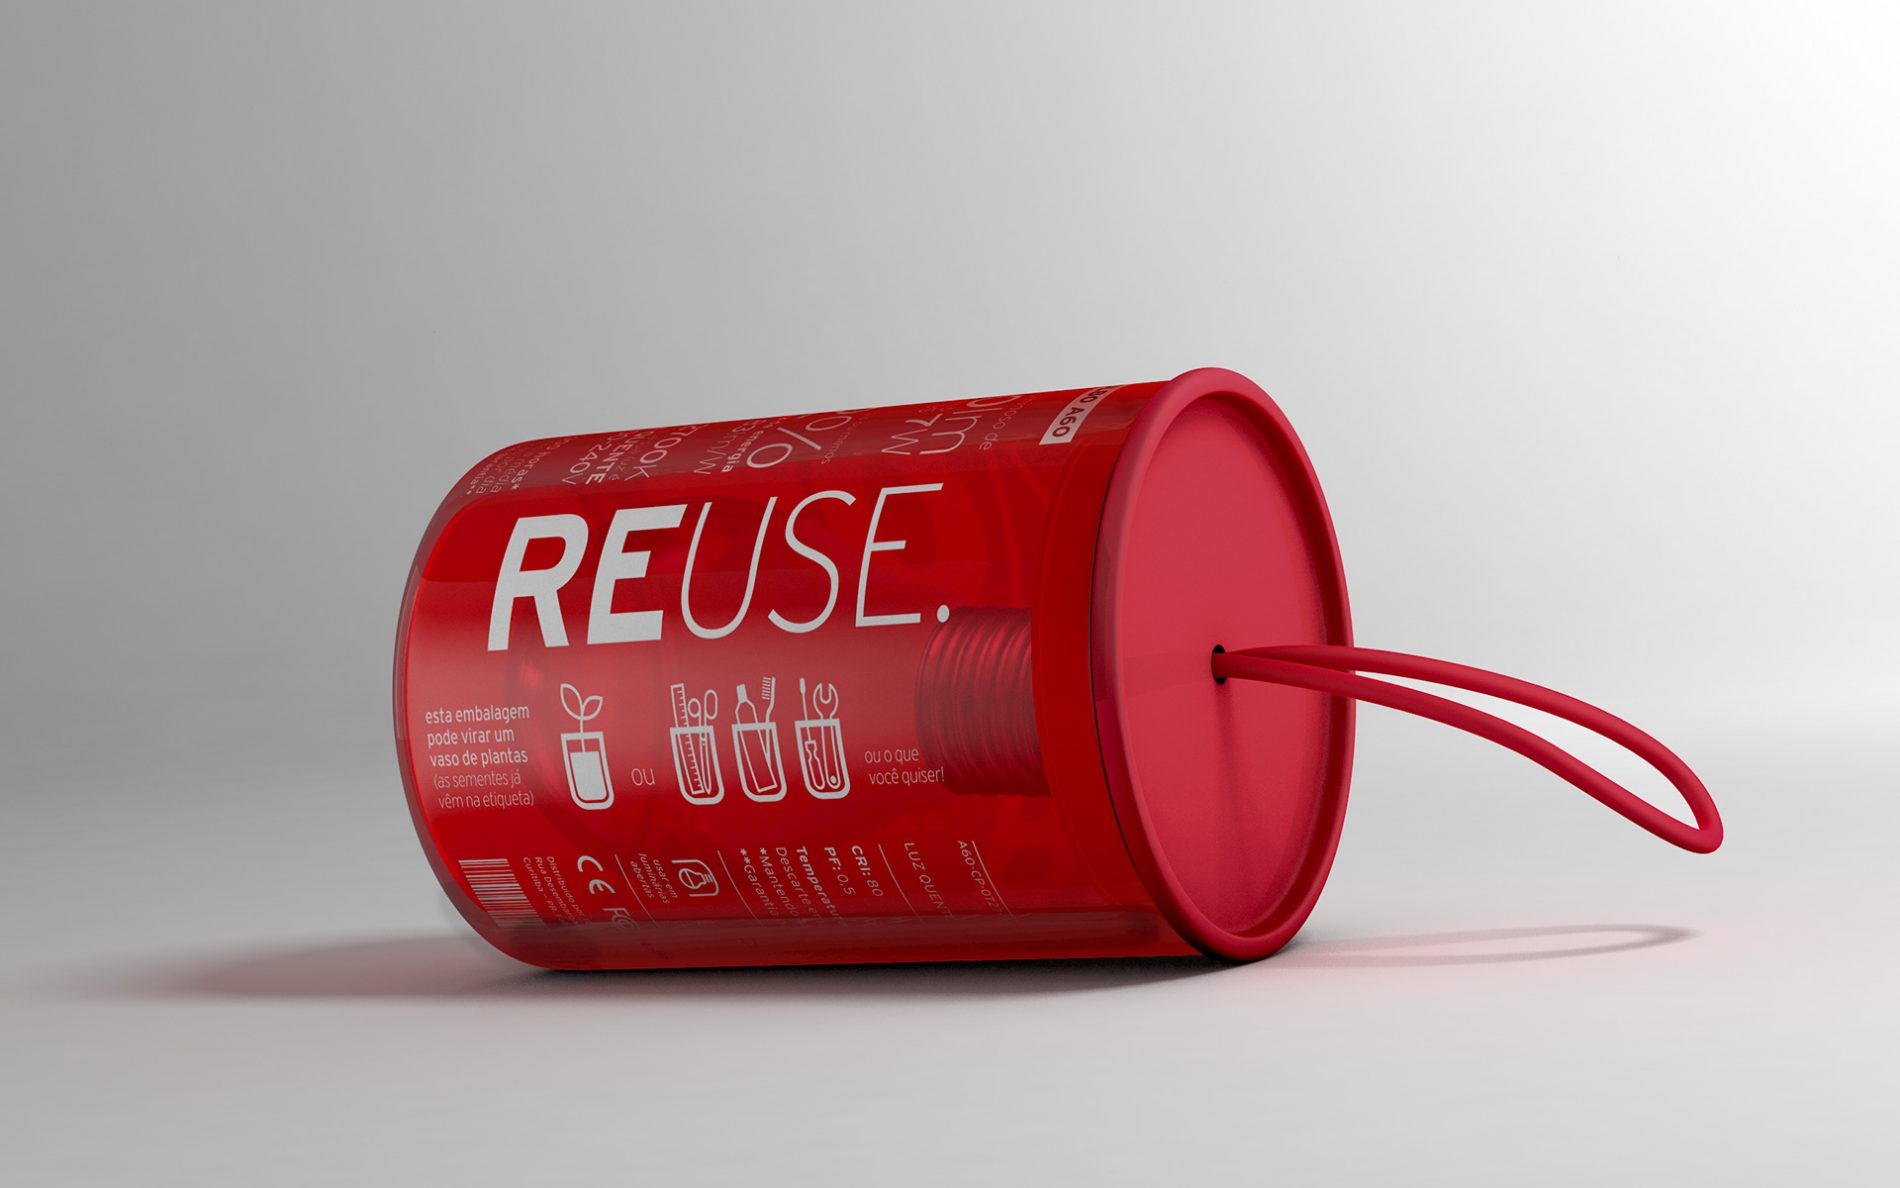 Remake, Reuse, Reduce, Renew, Recycling and Rethink Your Life in a Sustainable Way